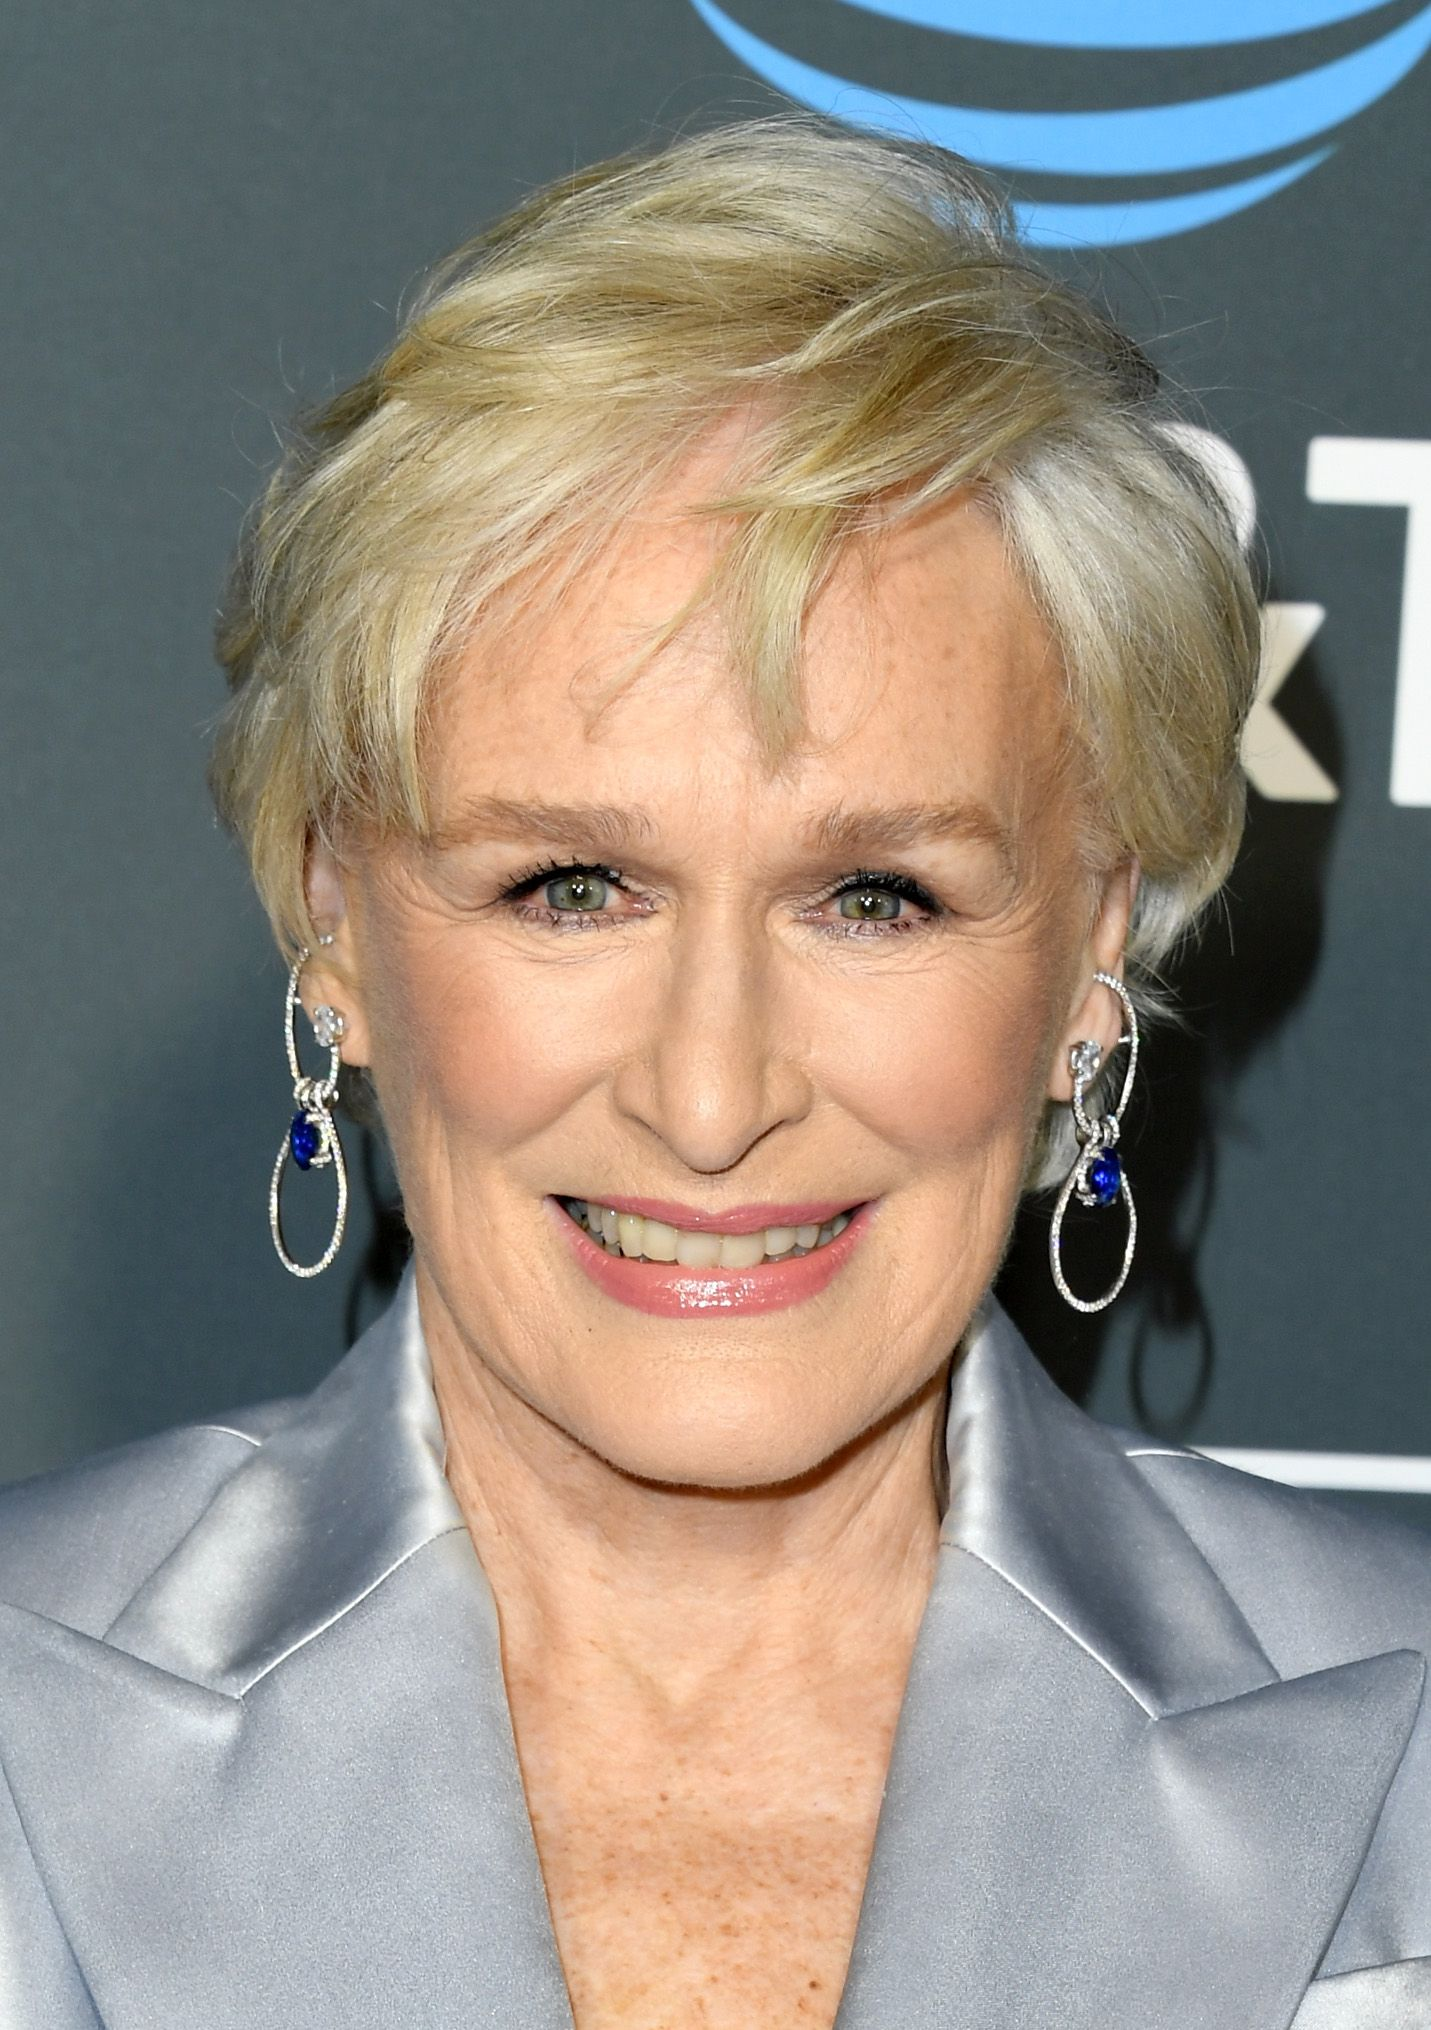 GettyImages-1082141178 Glenn close